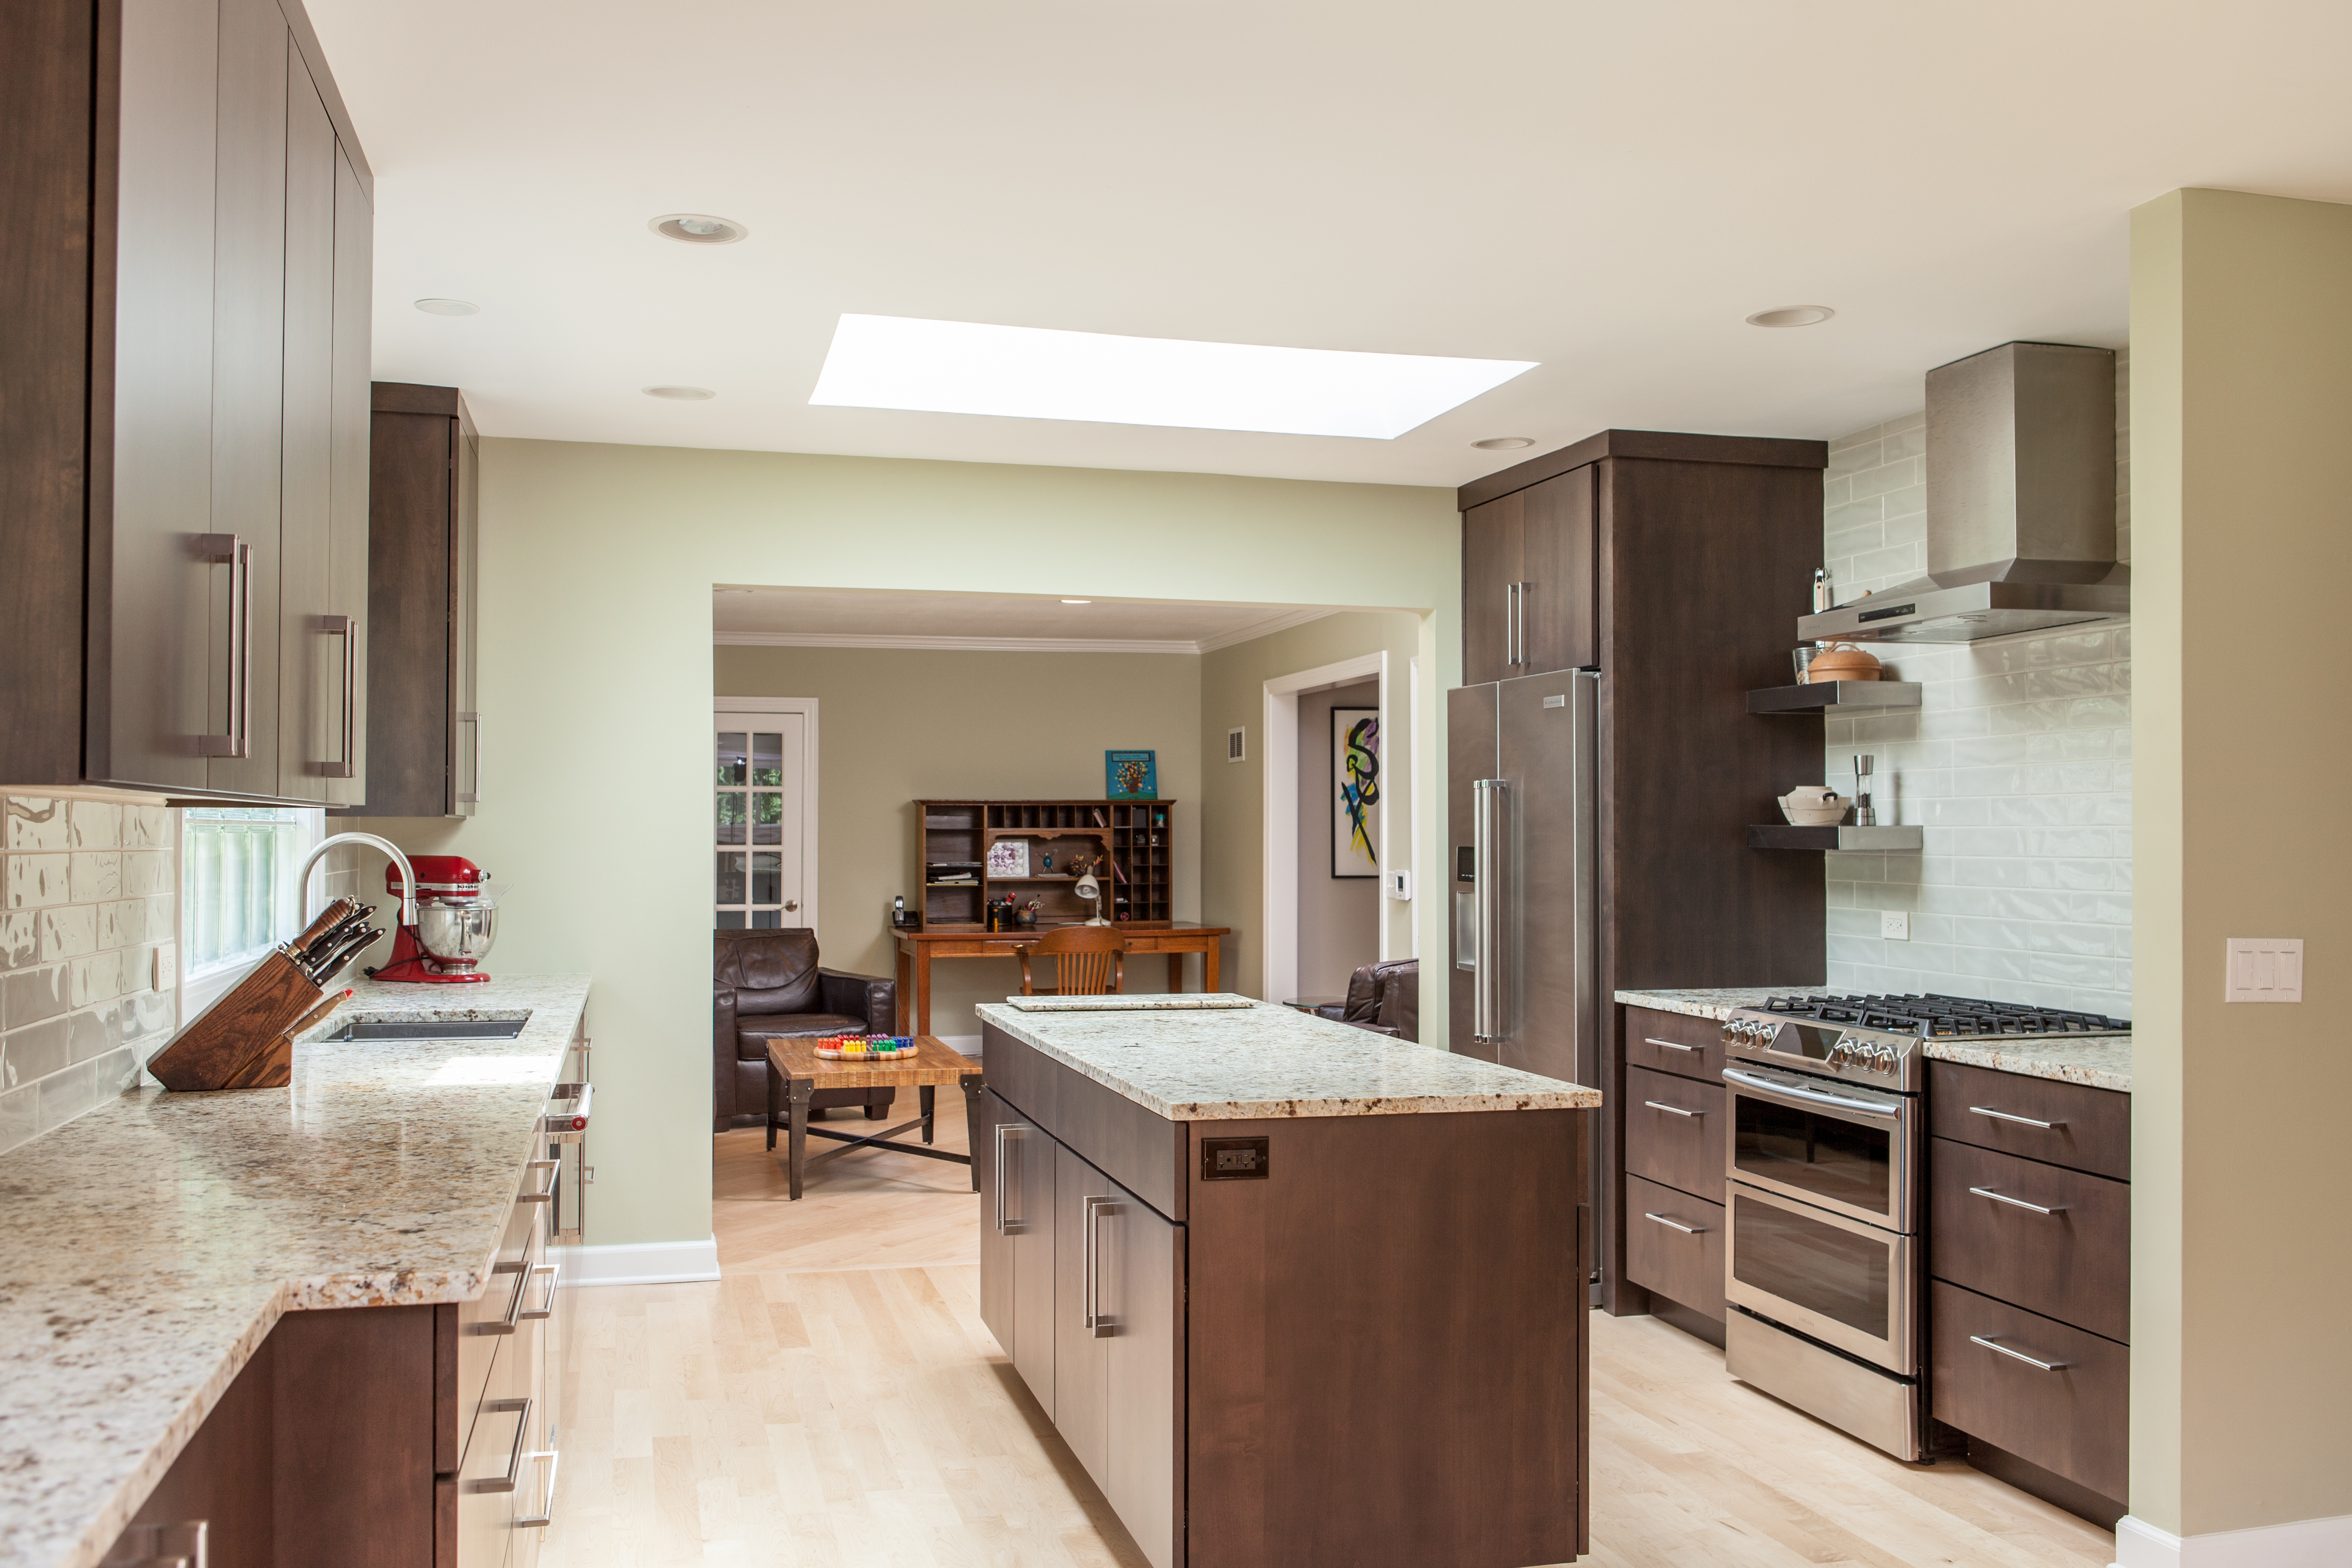 Open concept kitchen remodel into office space